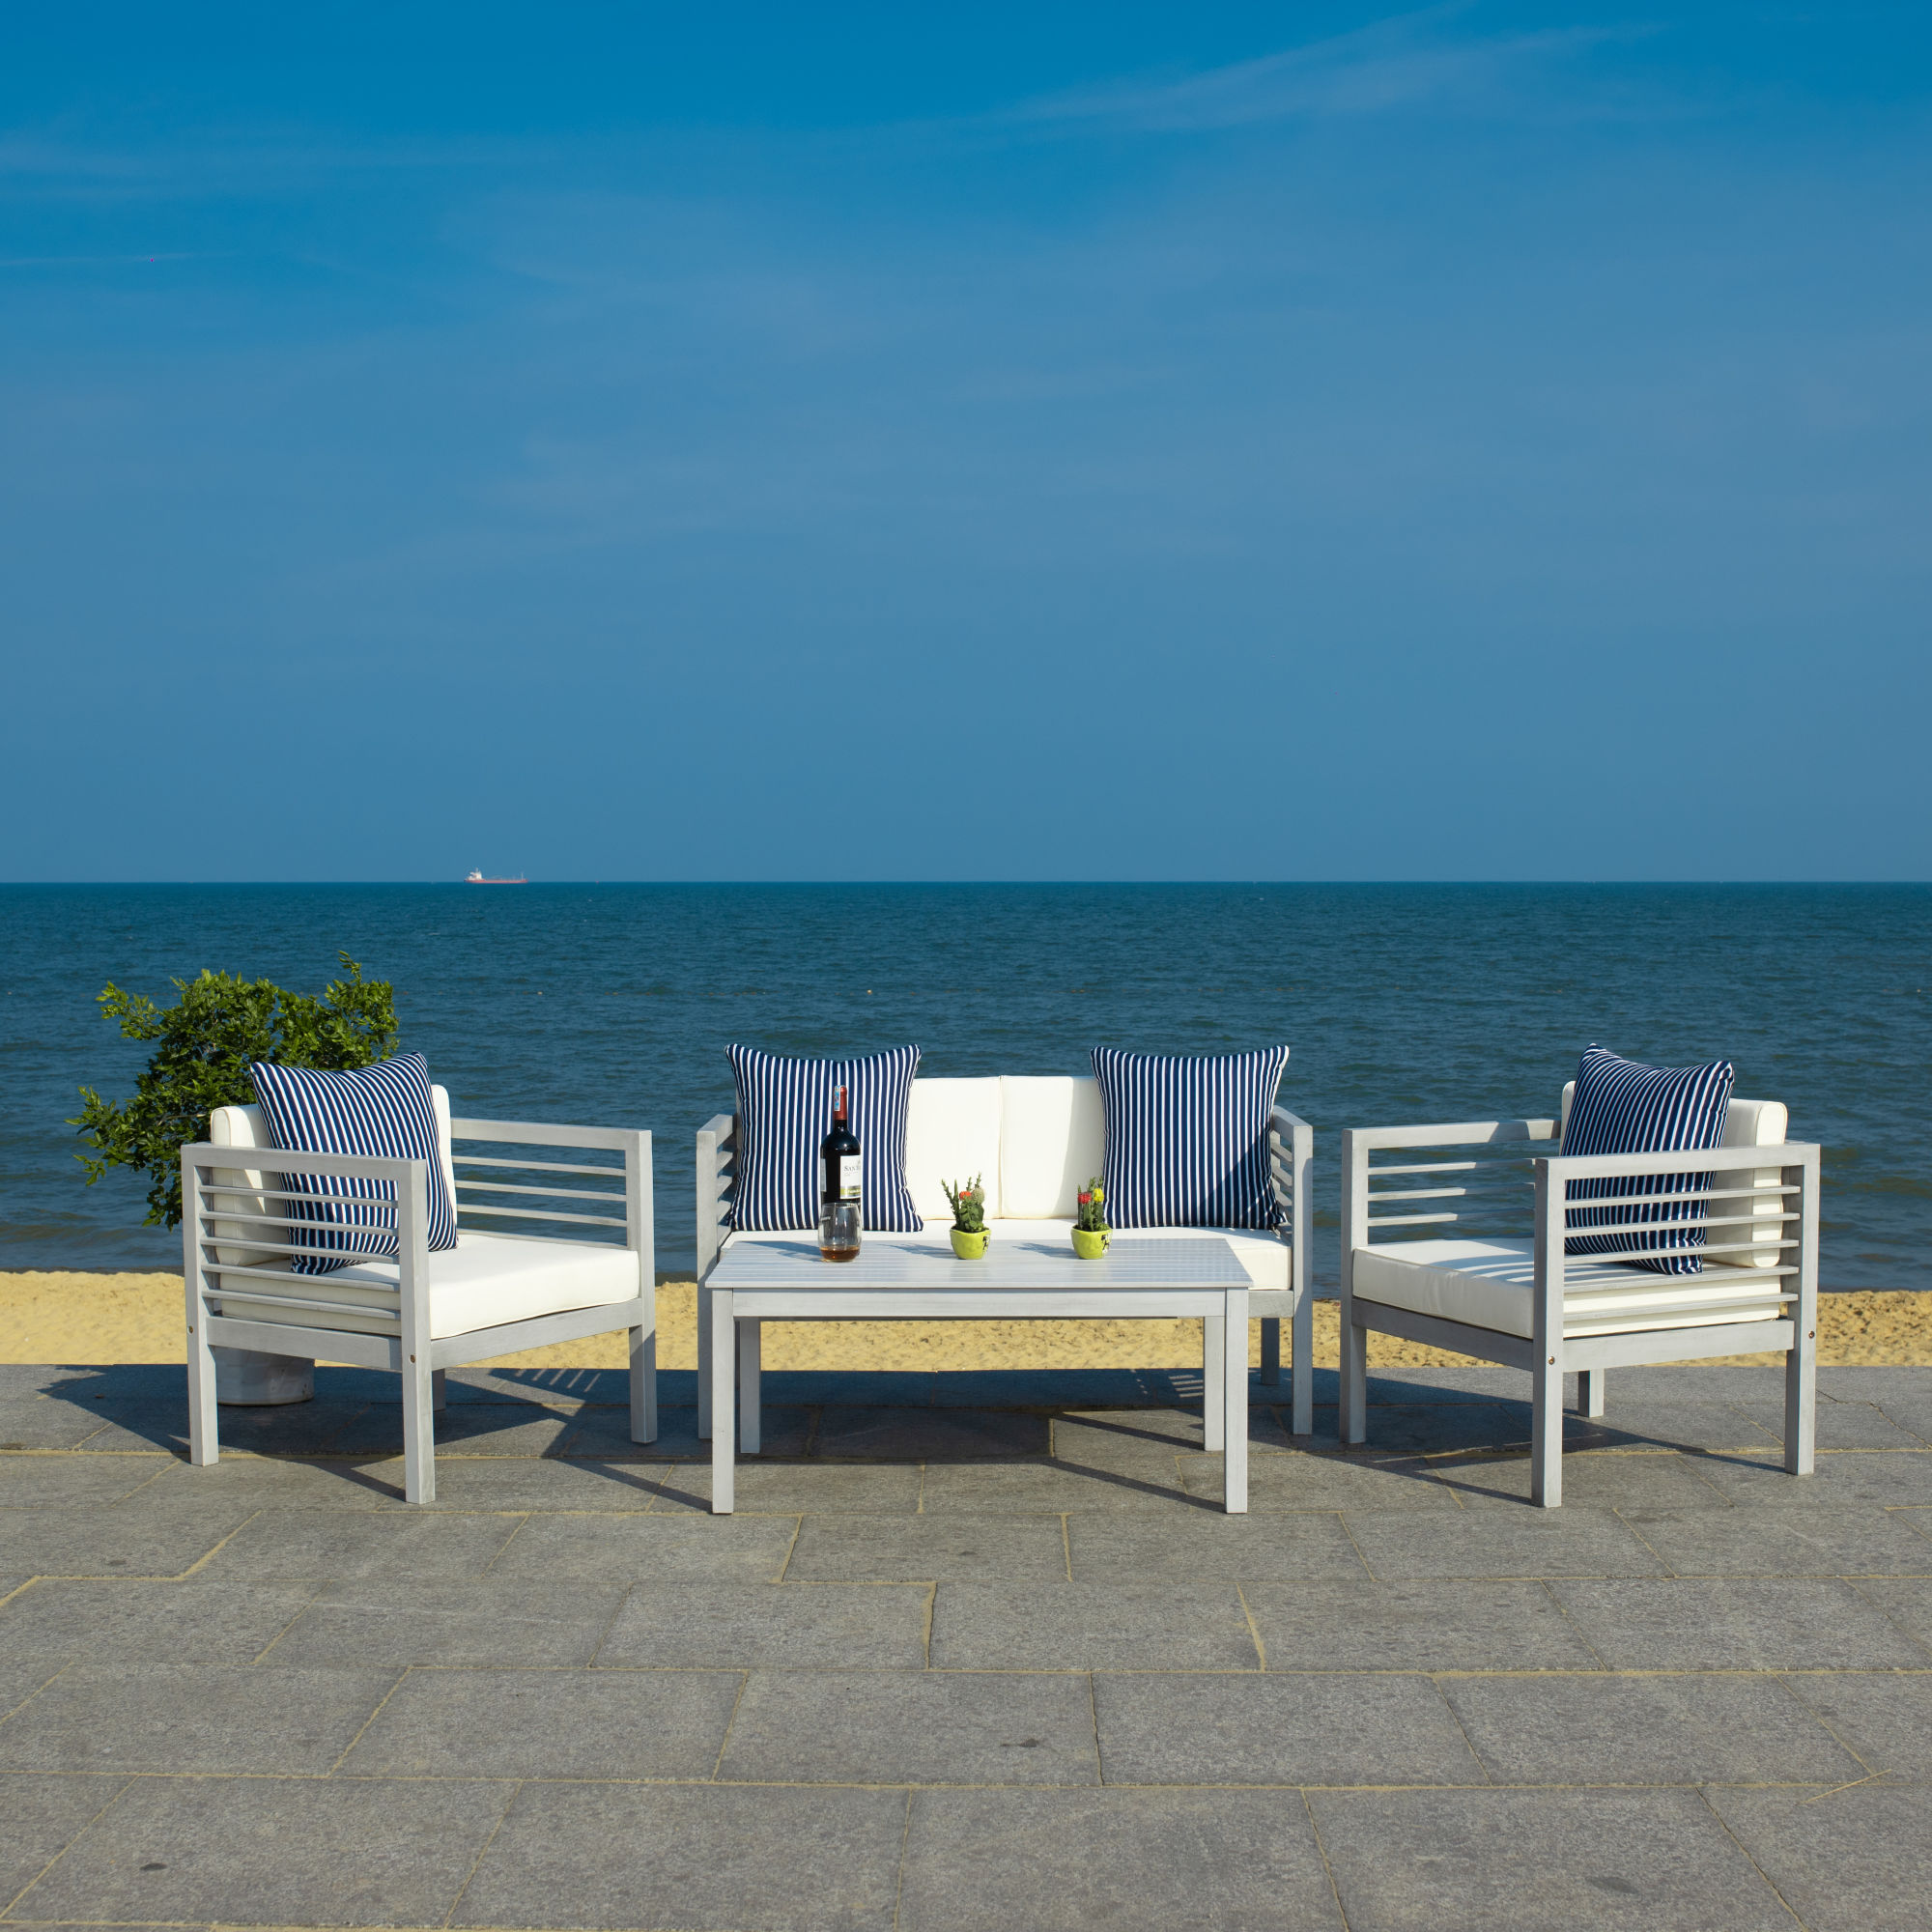 Alda 4 Pc Outdoor Set With Accent Pillows on Safavieh Alda 4Pc Outdoor Set id=24836